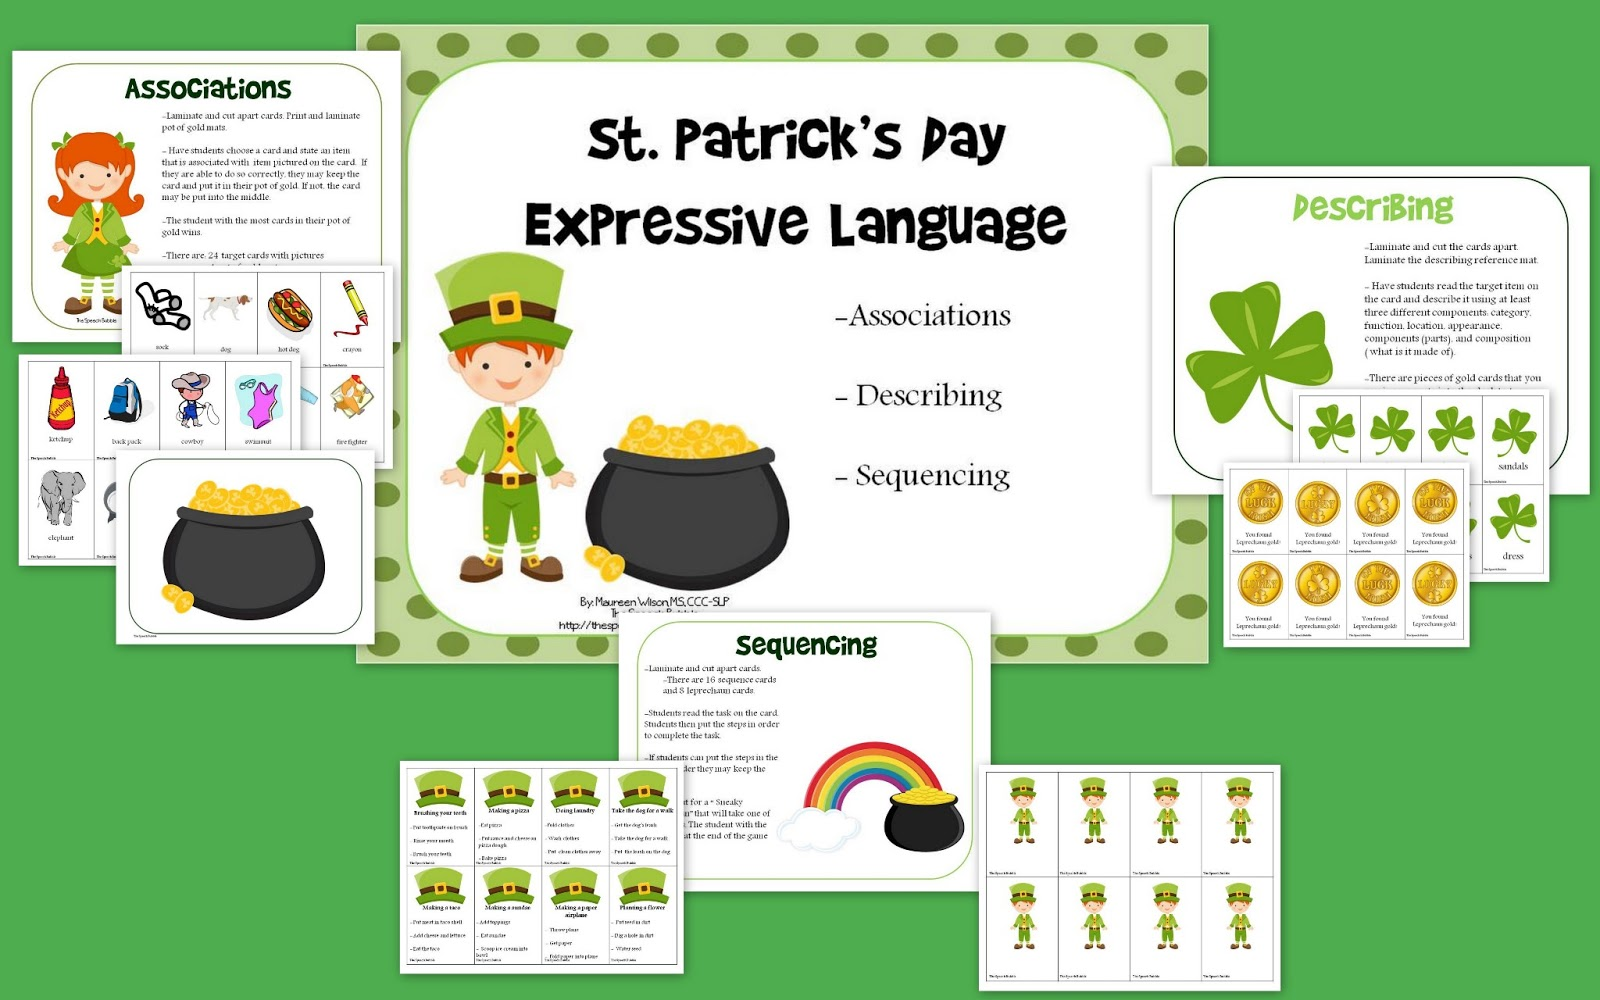 St. Patrick's Day Expressive Language